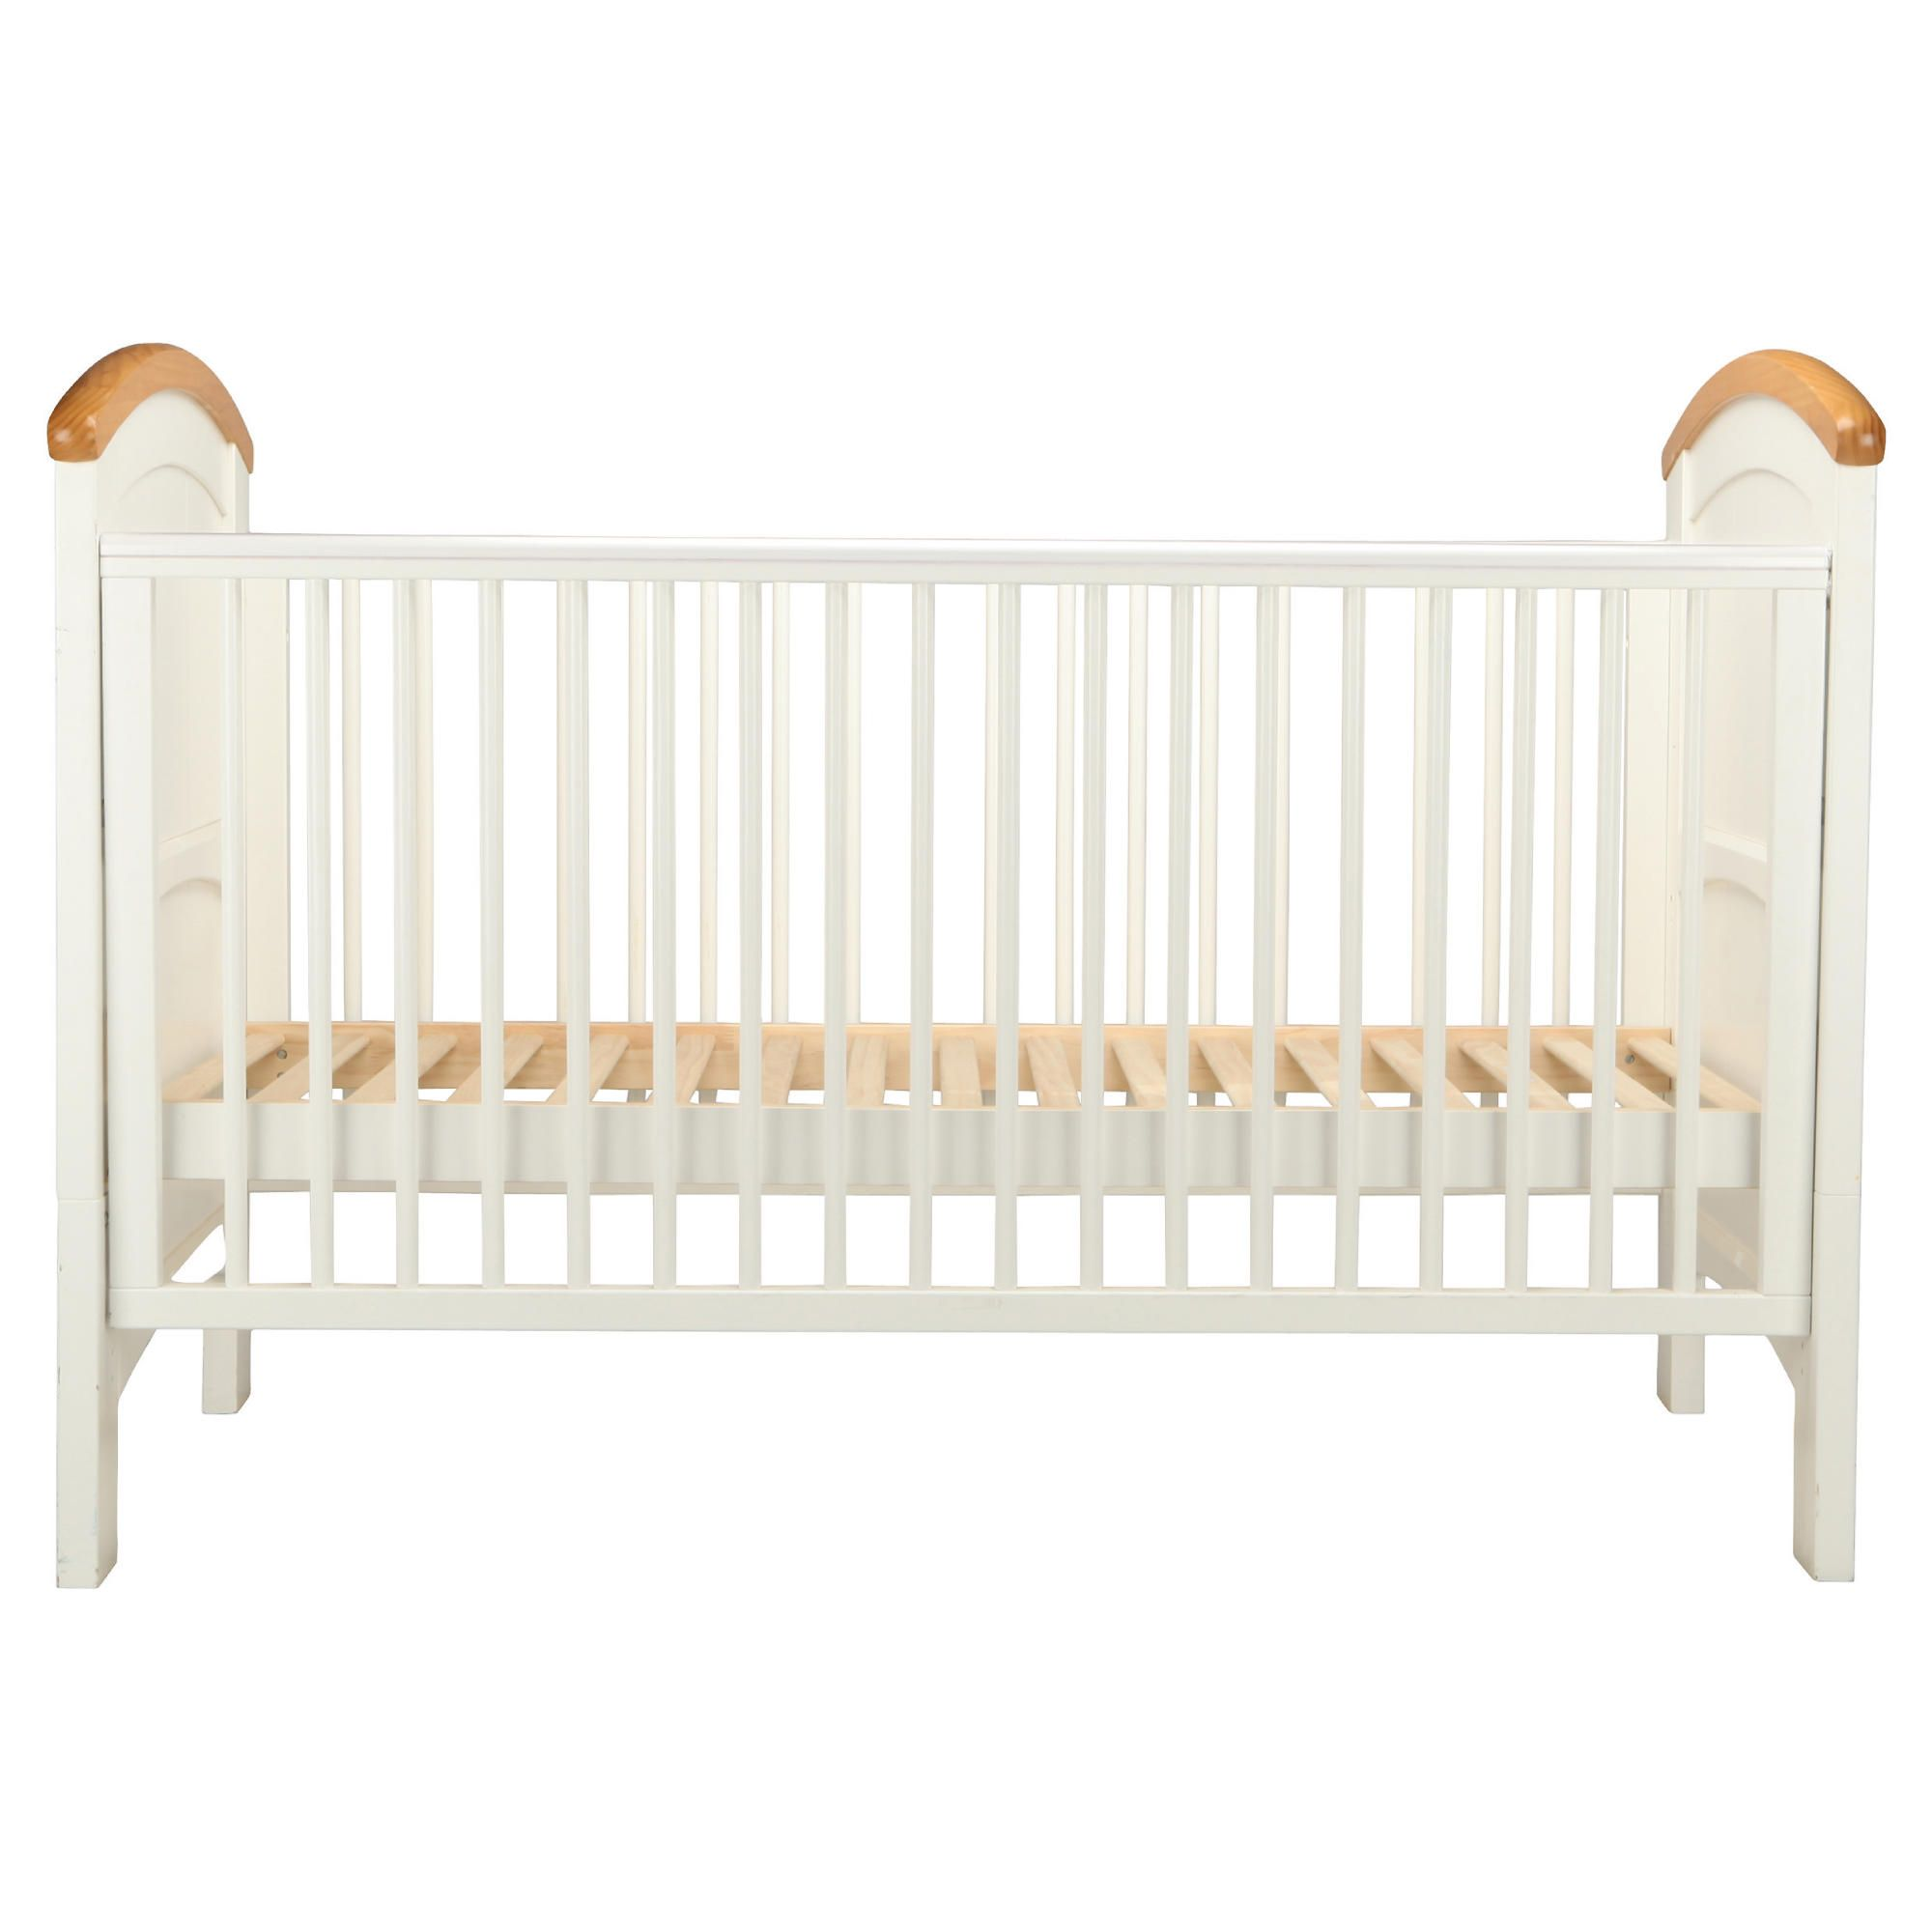 Cosatto Hogarth 3 in 1 Cot Bed, White & Oak at Tescos Direct